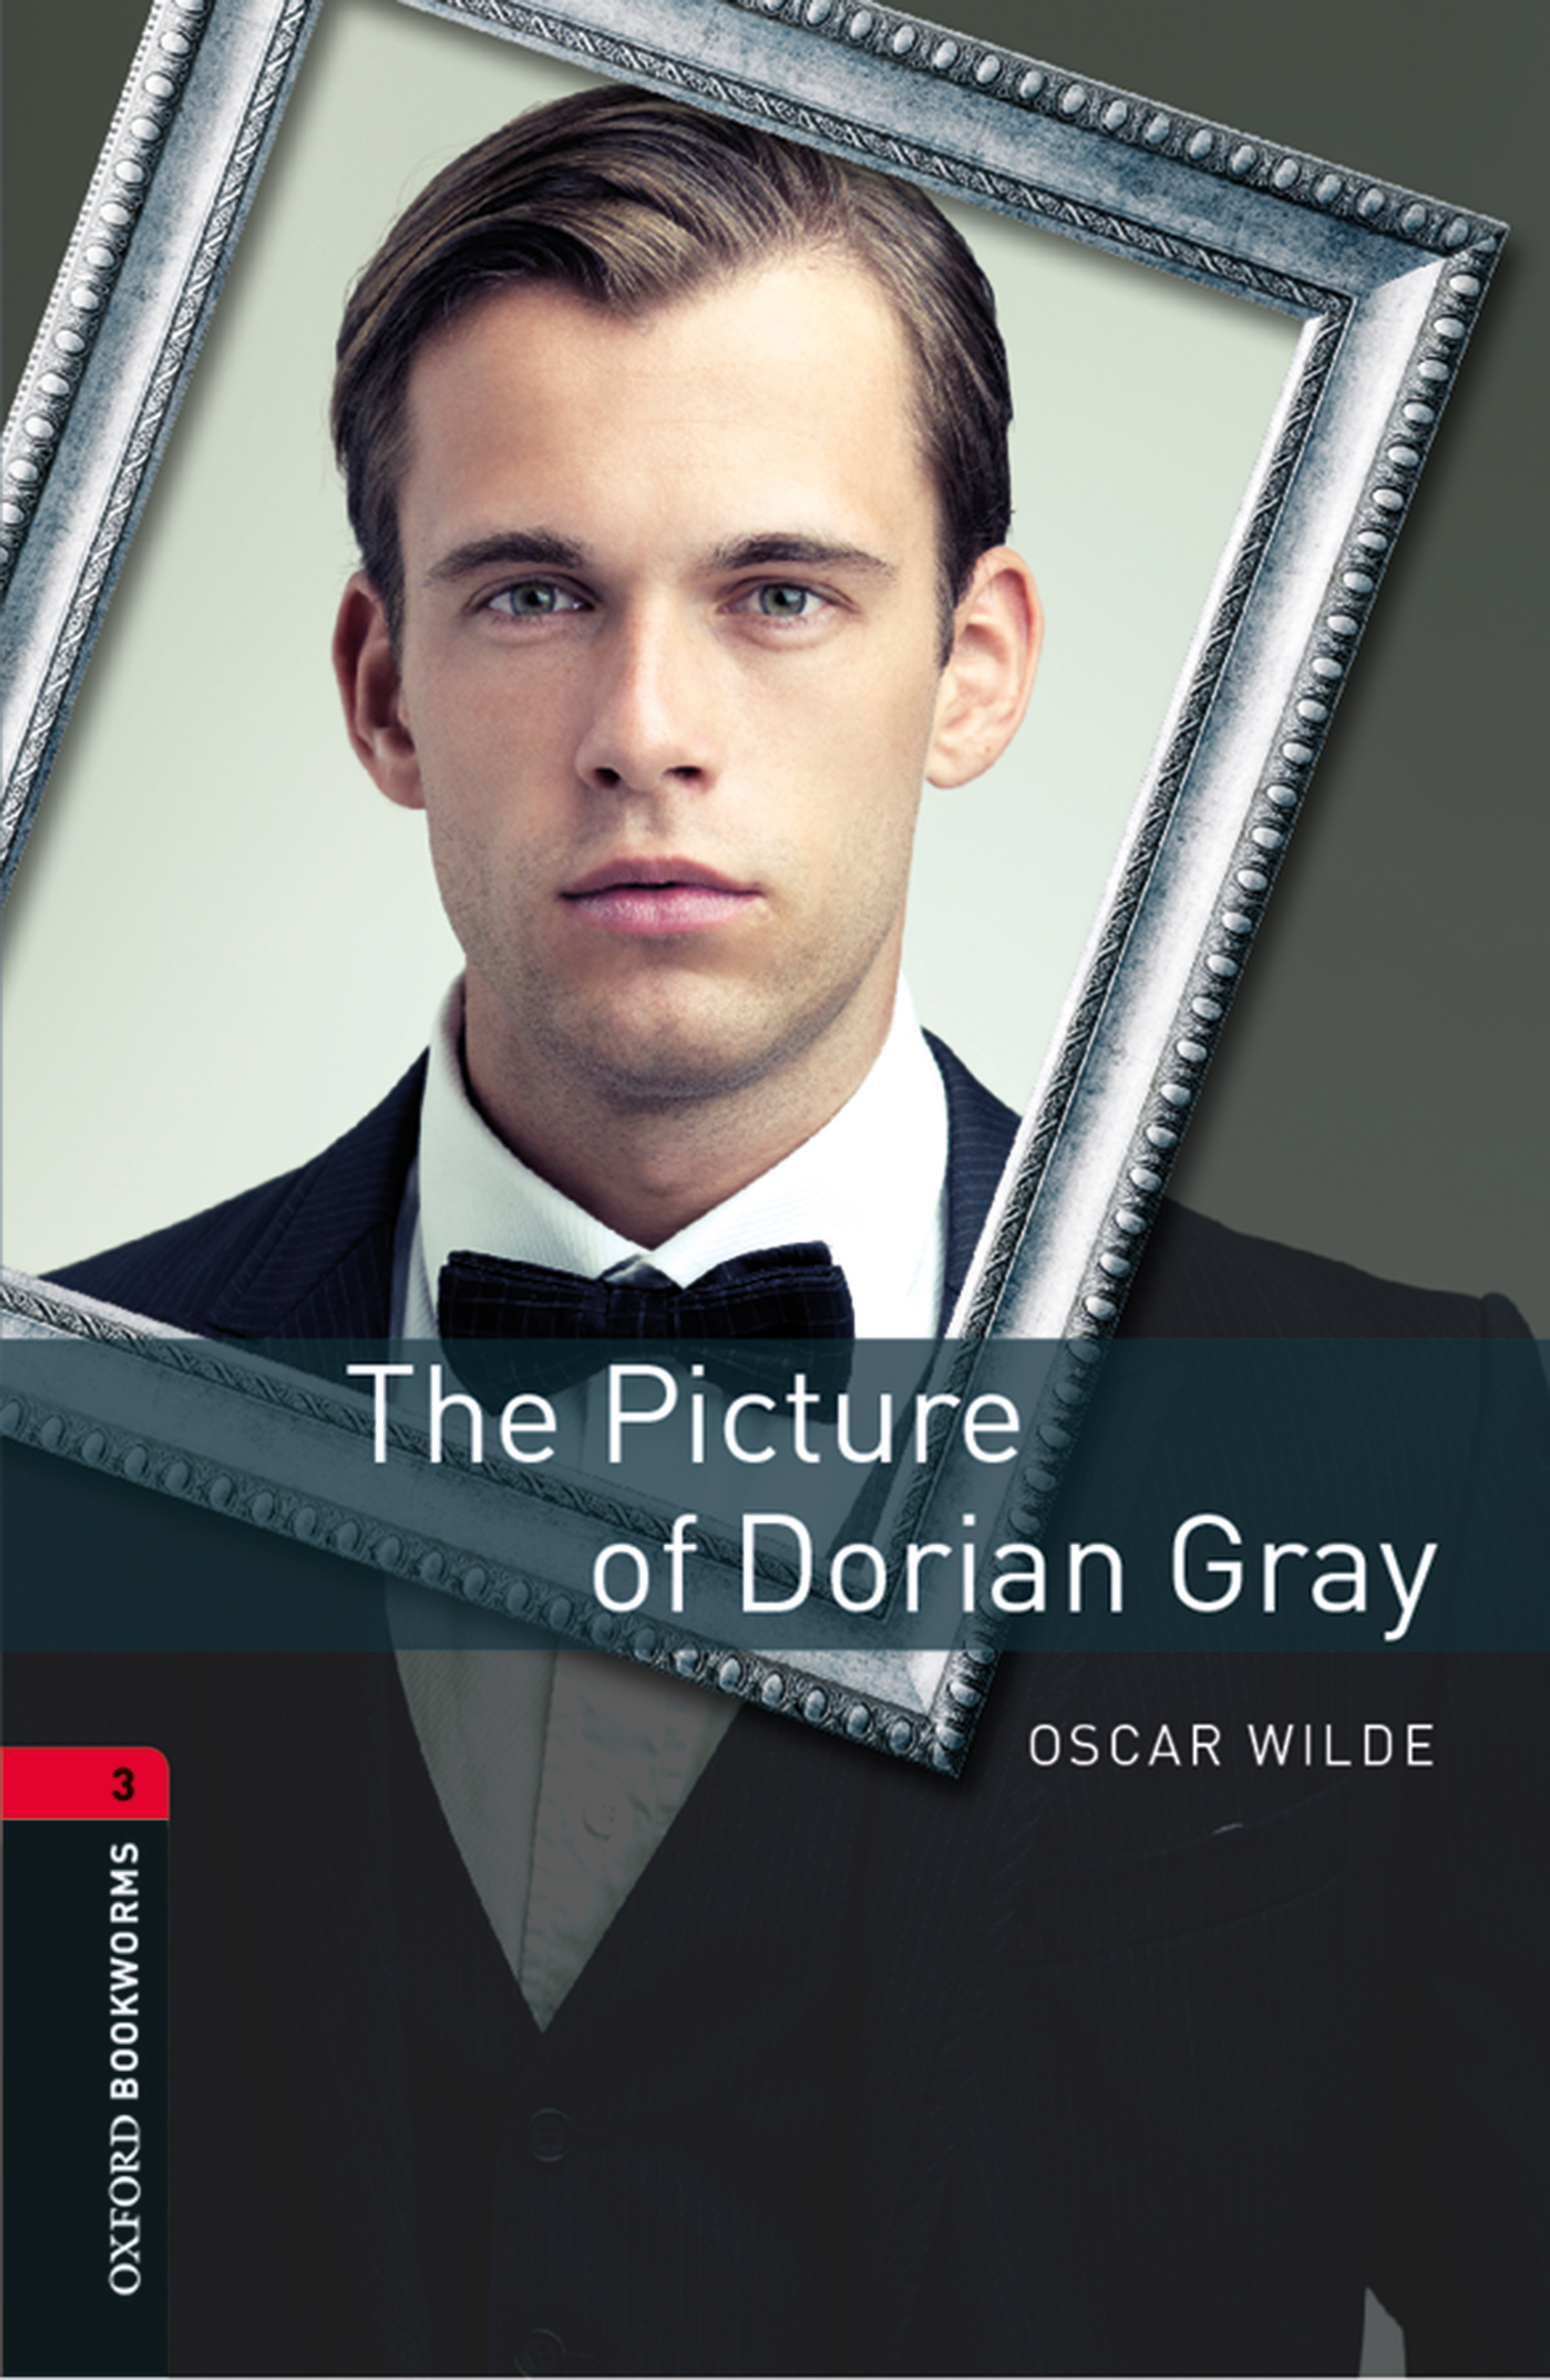 The Picture Of Dorian Gray Oxford Bookworms Stage 3 Download